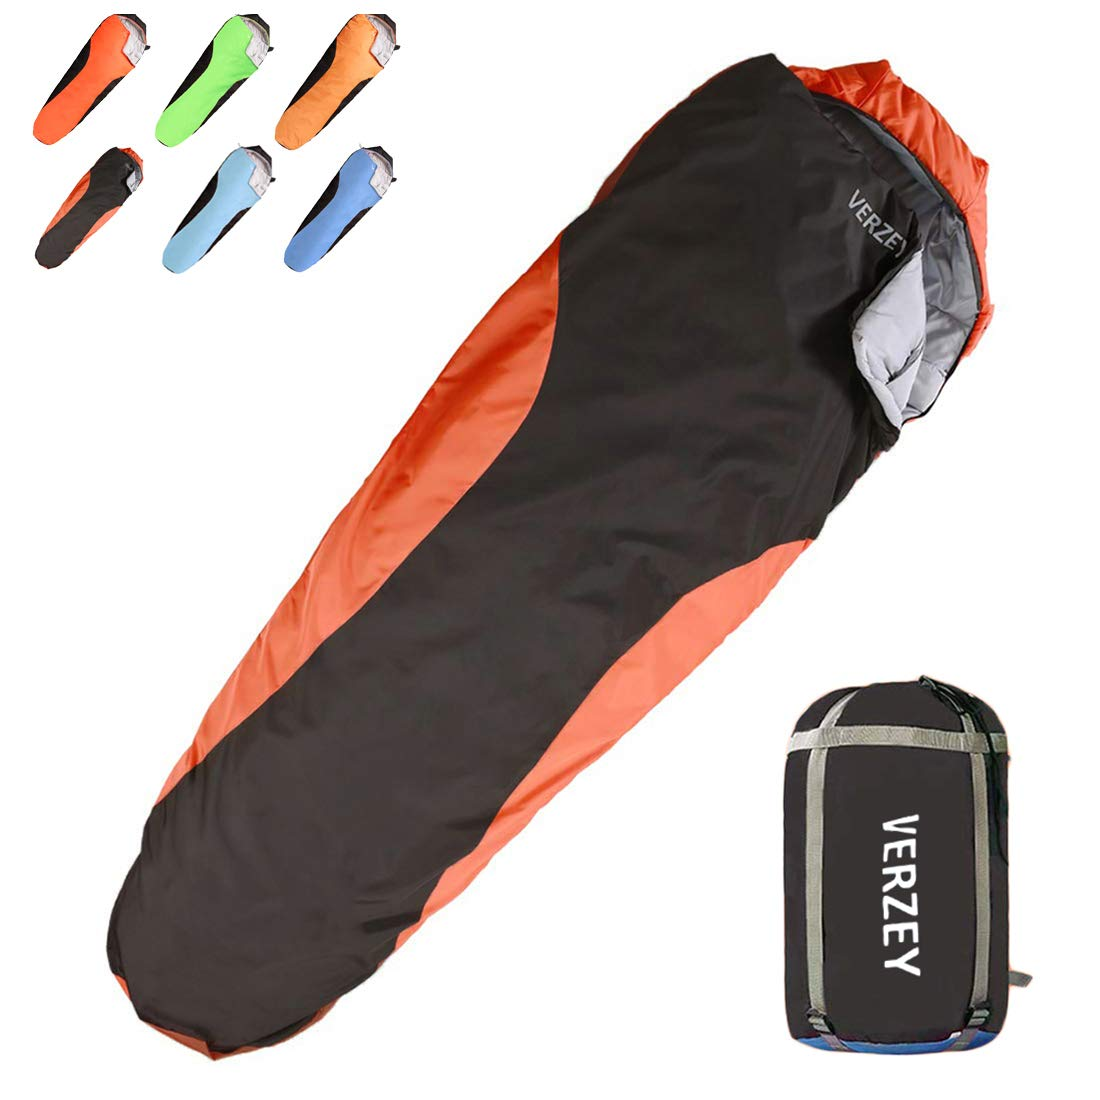 VERZEY Mummy Camping Sleeping Bag for Adults, Youth,Kids & Boys, Great for 3-4 Season,Portable for Traveling Hiking Waterproof Lightweight Outdoor Sleeping Bags by VERZEY